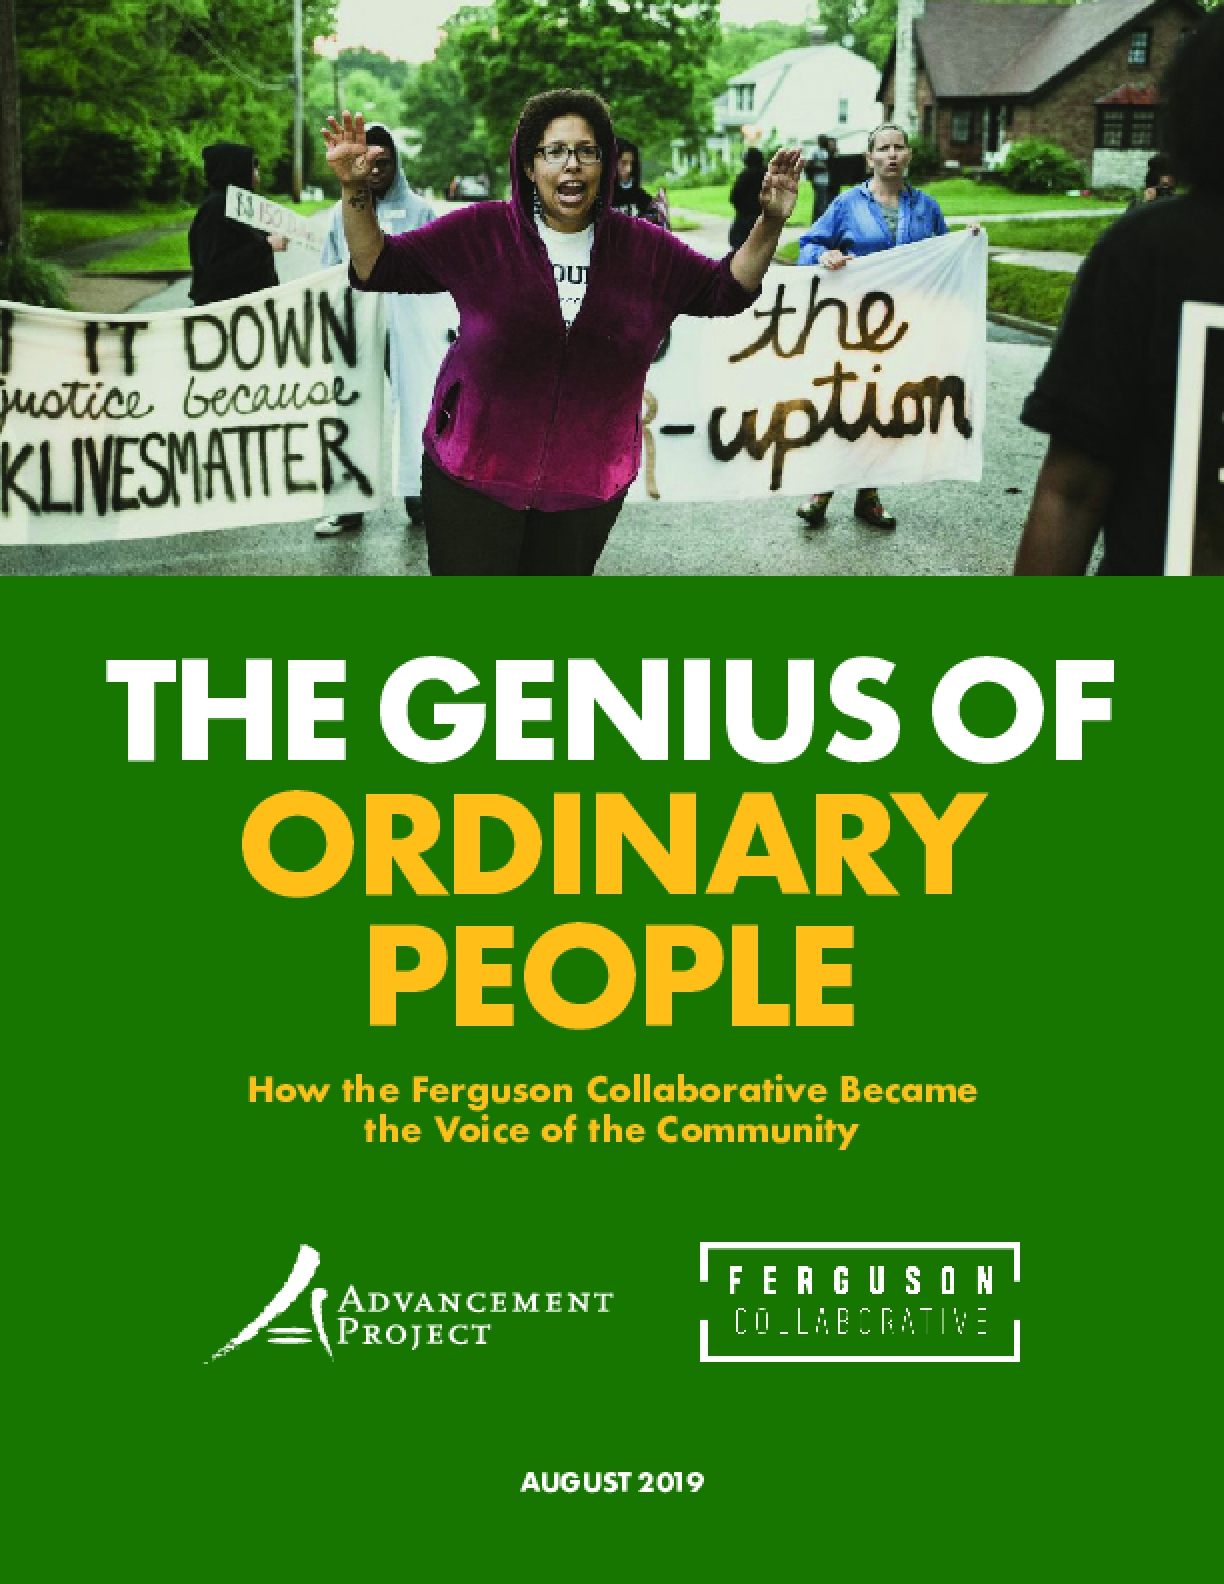 The Genius of Ordinary People: How the Ferguson Collaborative Became the Voice of the Community